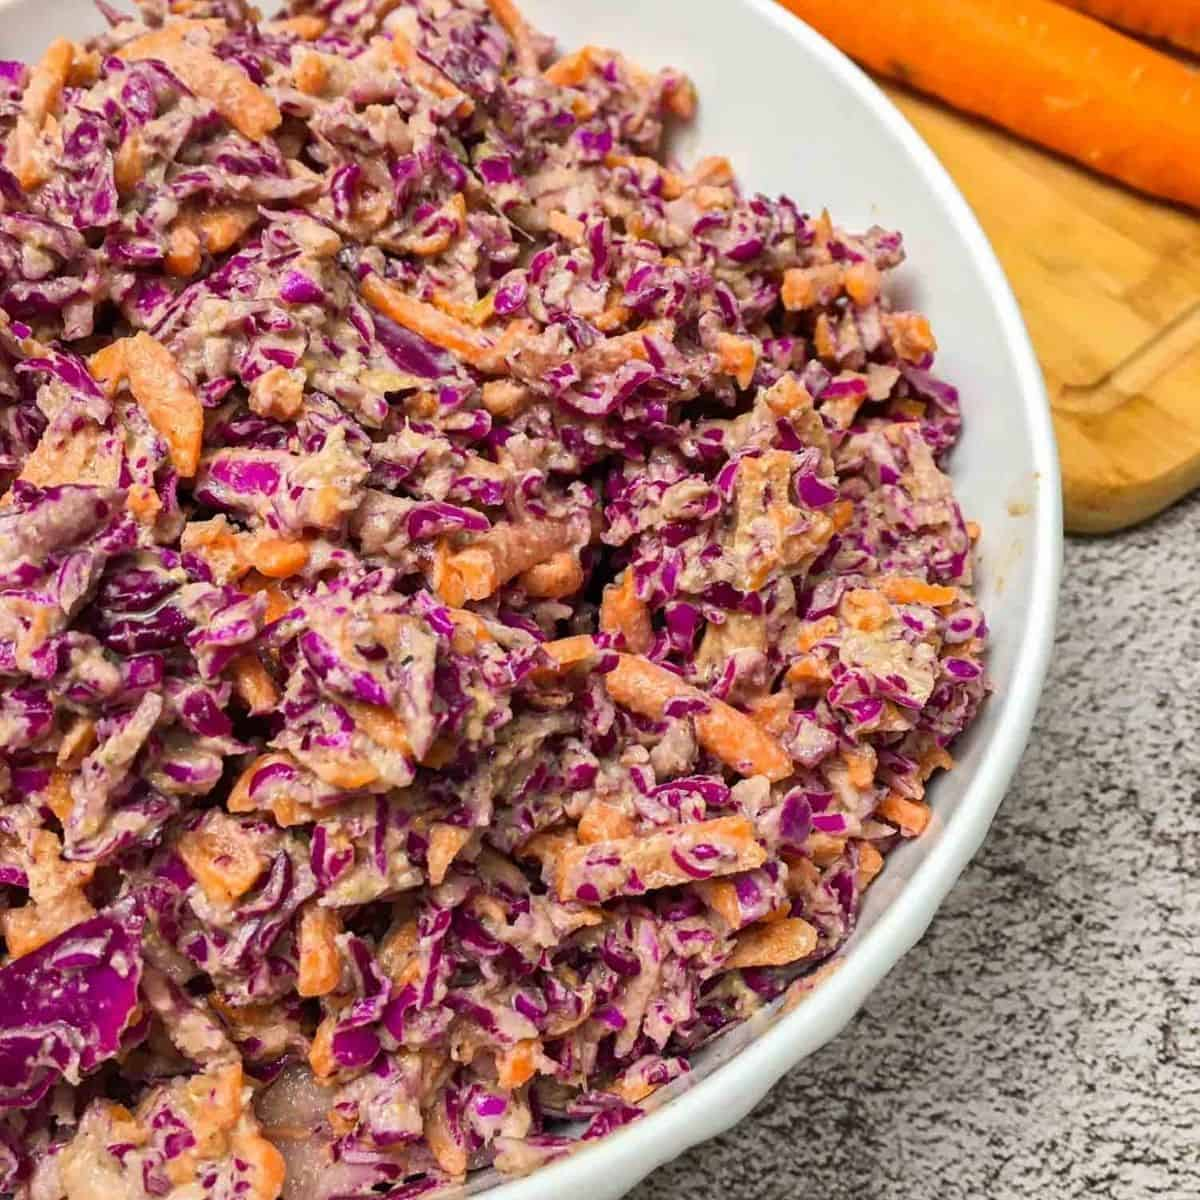 White bowl with purple slaw inside dressed in creamy dressing.